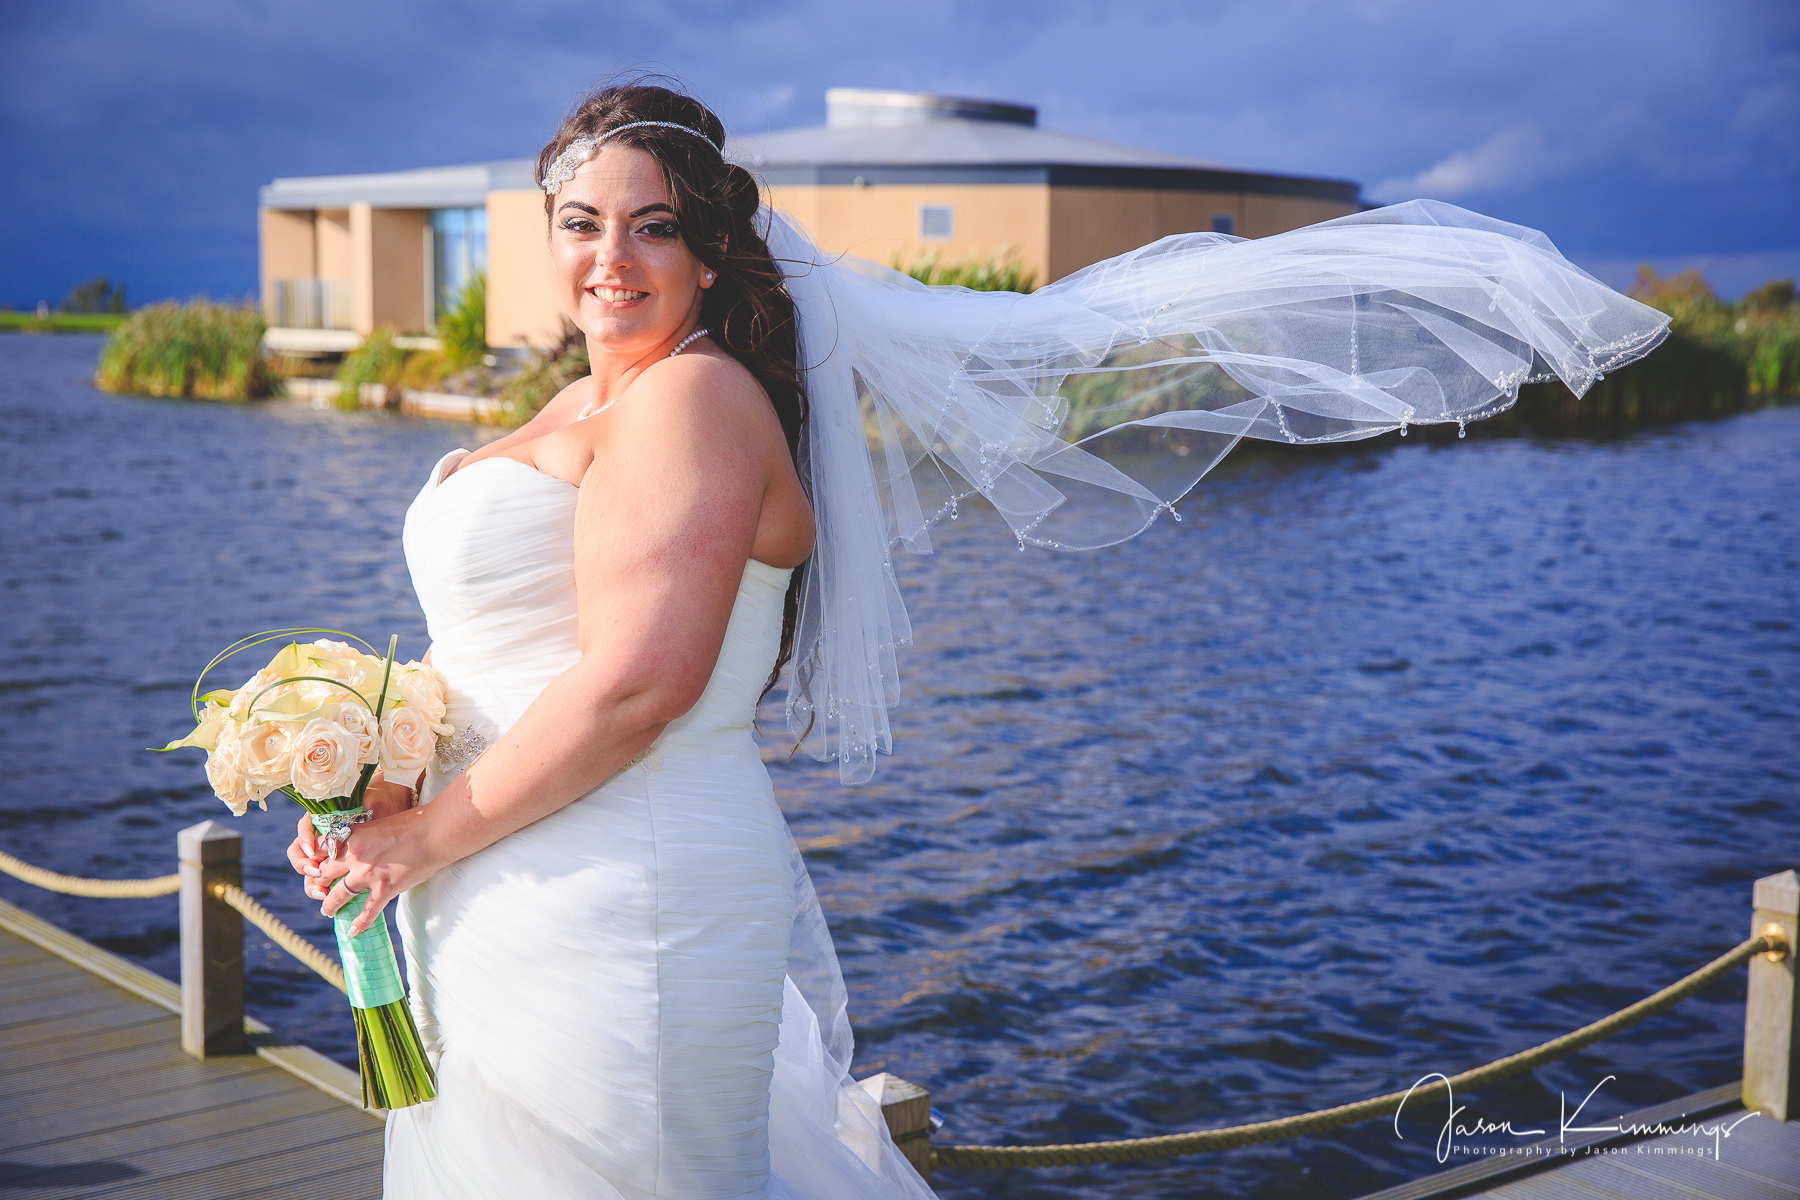 vu-wedding-photography-bathgate-23.jpg